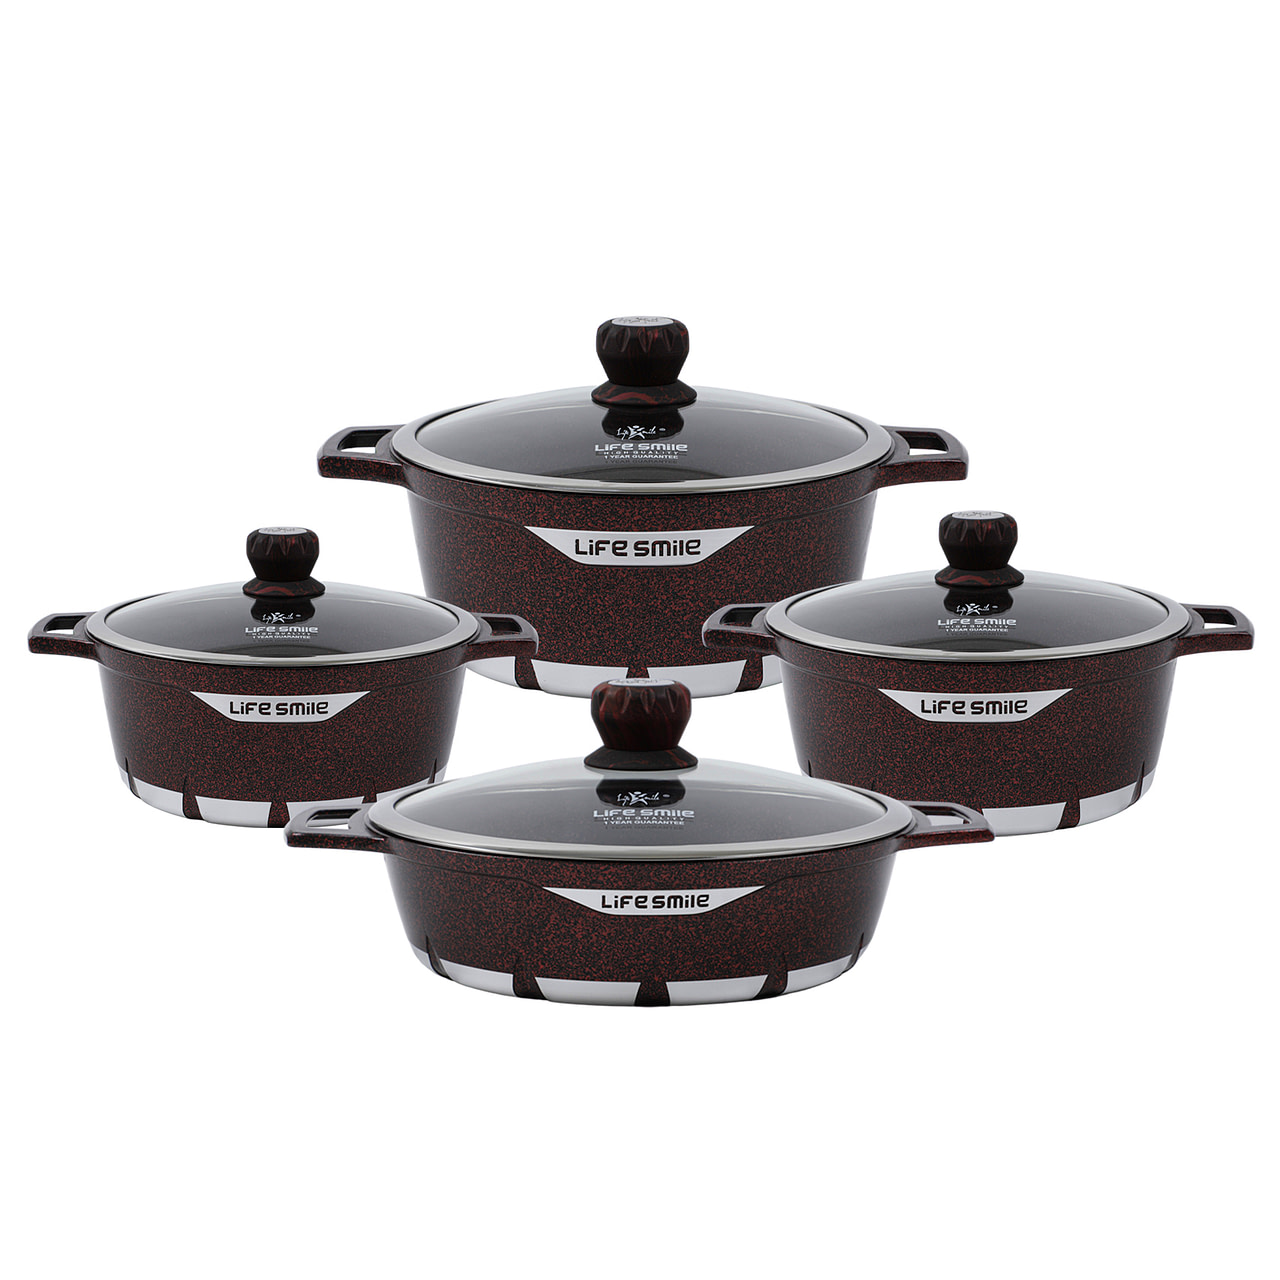 Life Smile 8PCS Cookware Set with Granite Coating